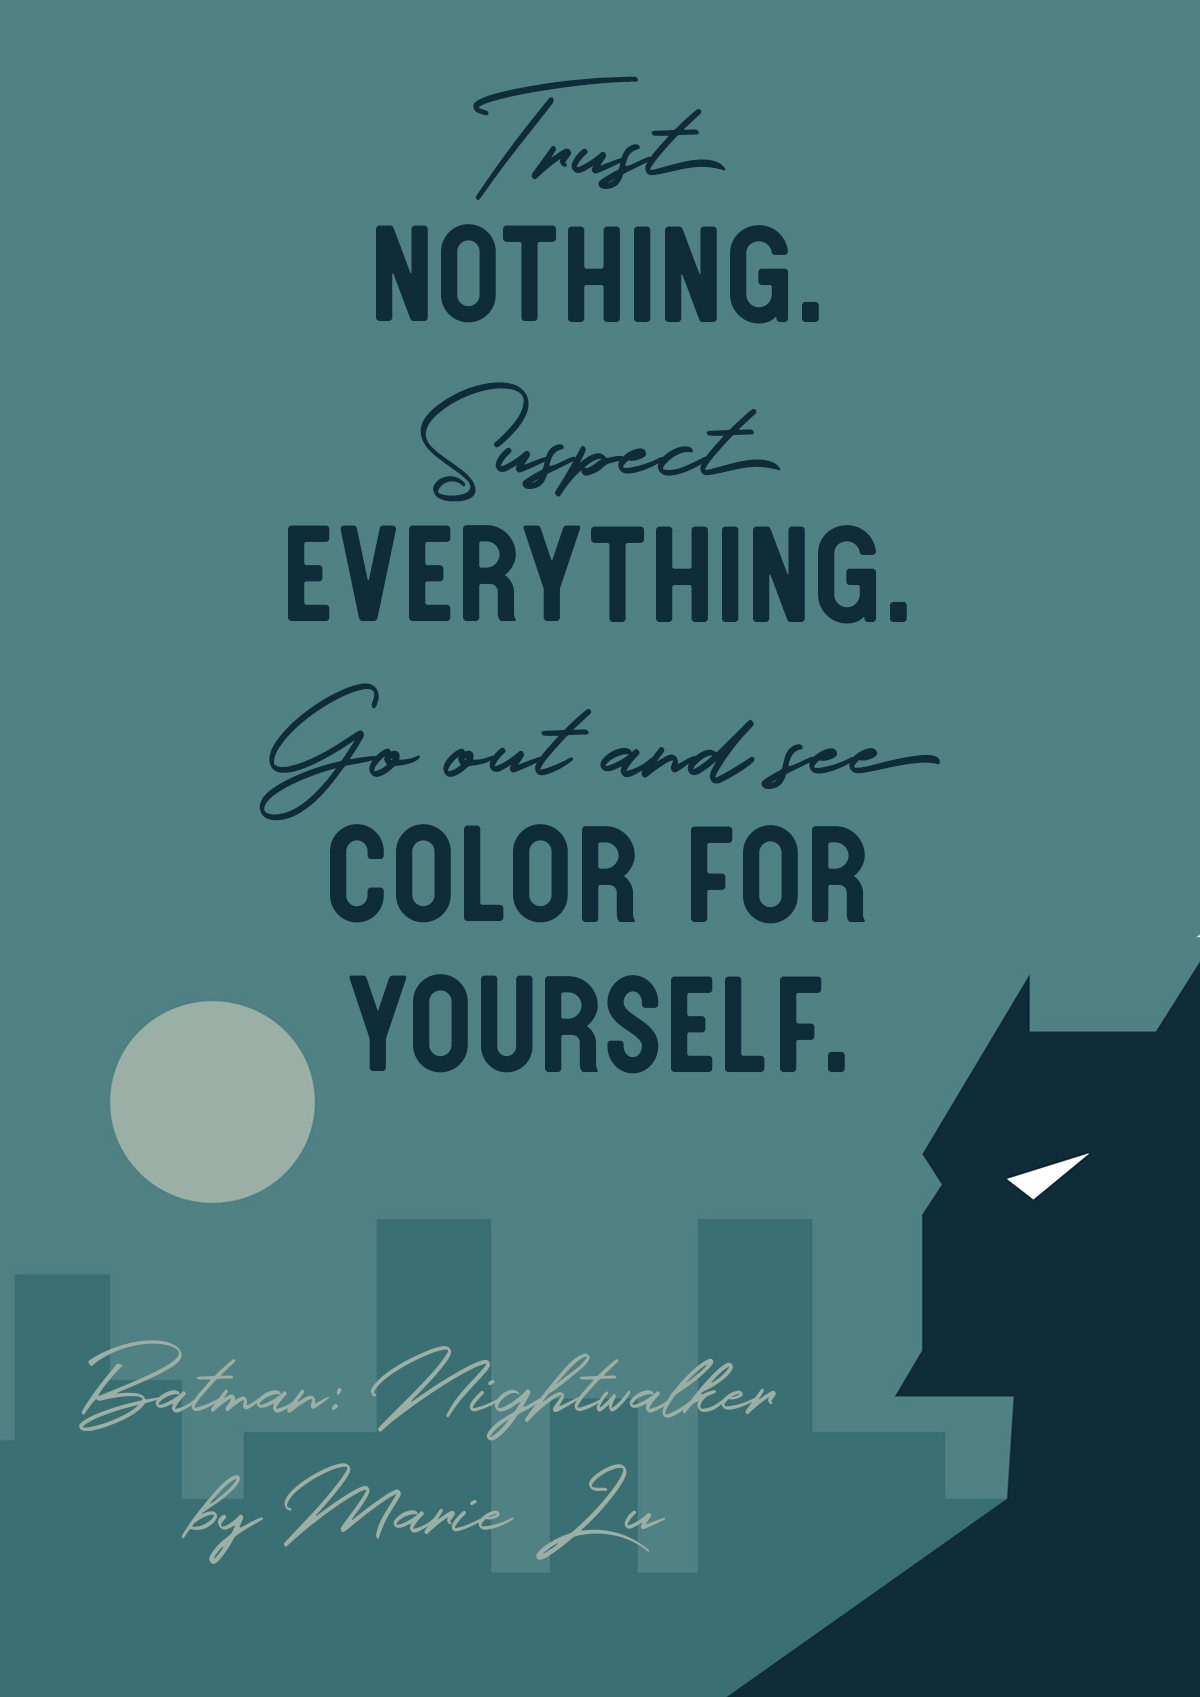 Batman Nightwalker by Marie Lu Quote - Trust Nothing